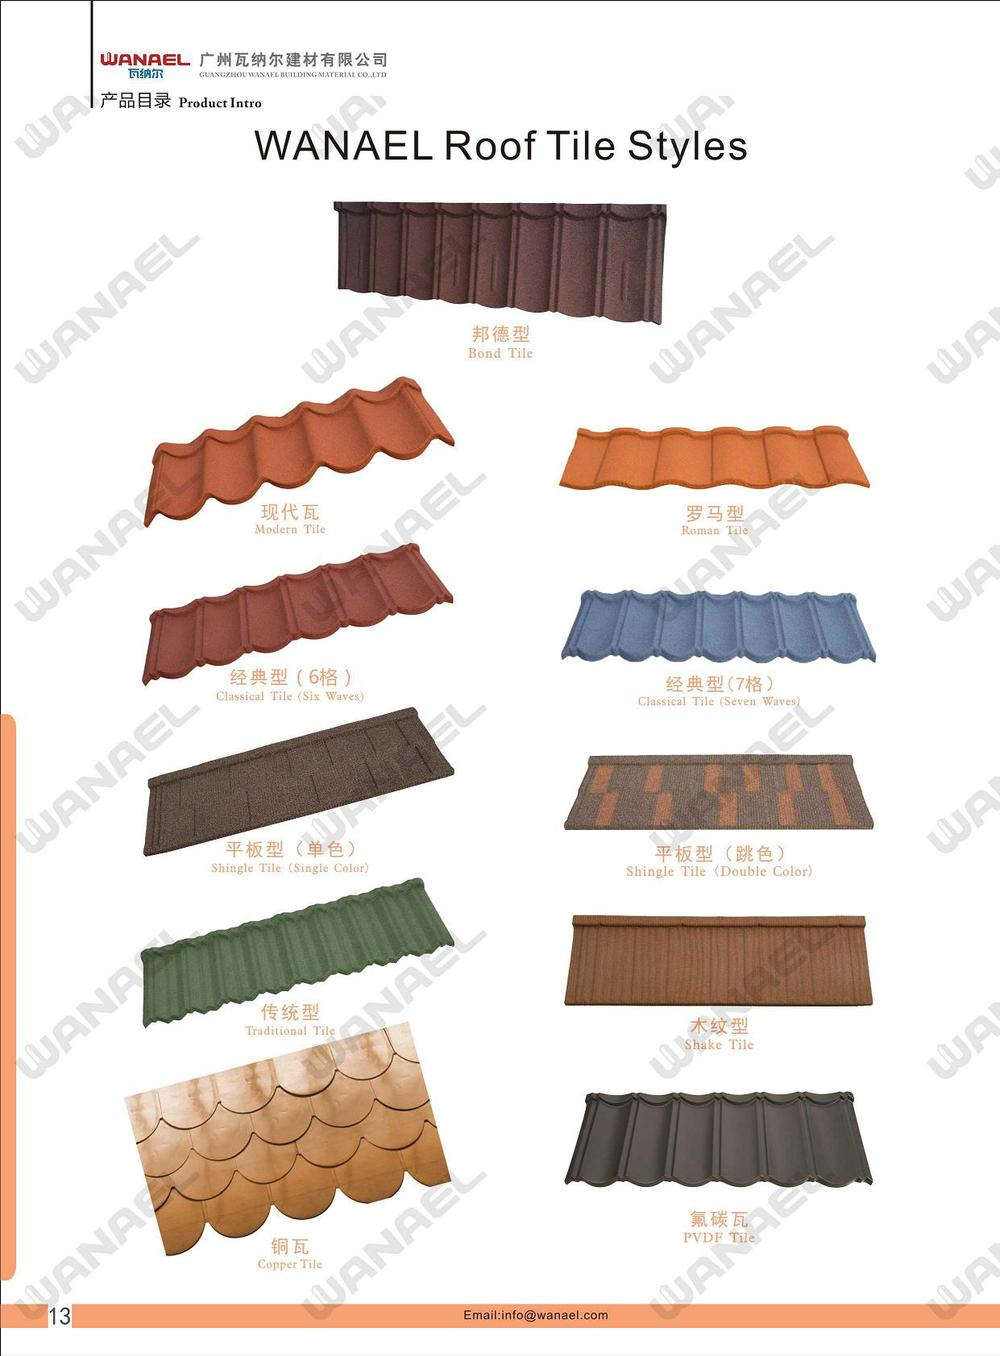 Soncap heat resistant roof covering materials wanael roof for Names of roofing materials